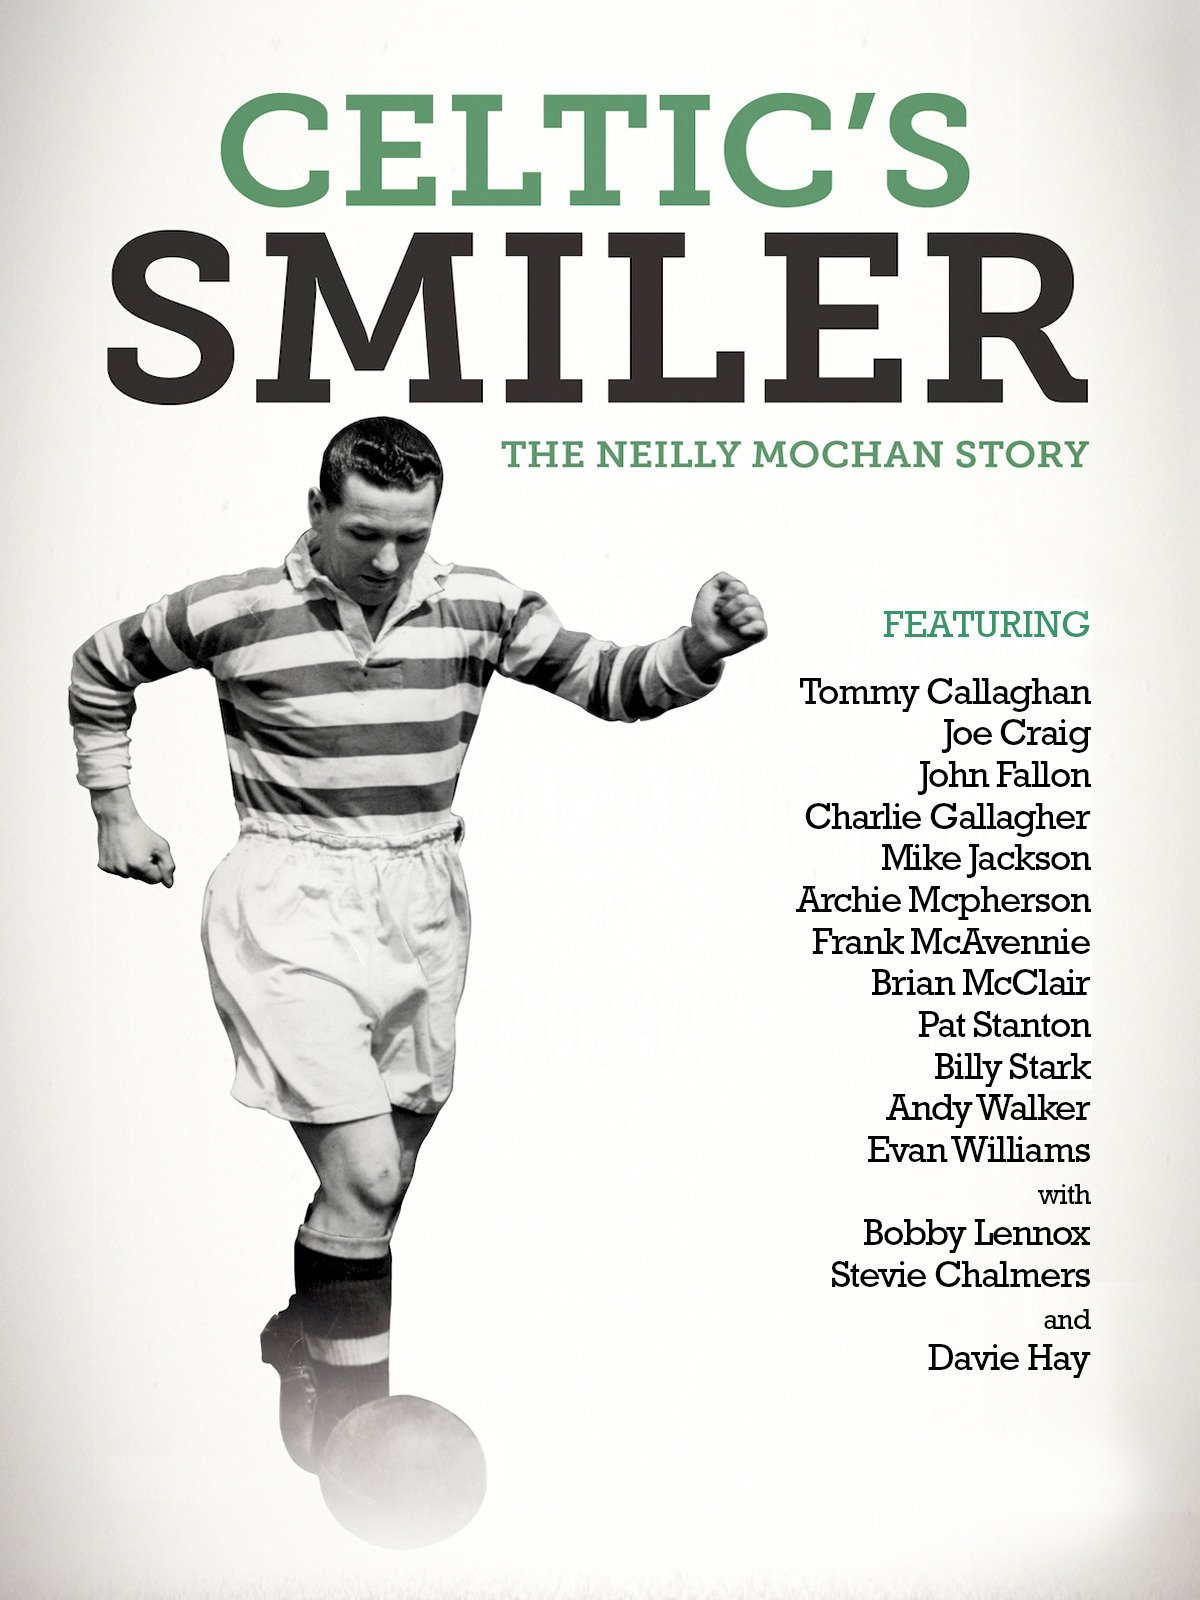 Celtic's Smiler: The Neilly Mochan Story